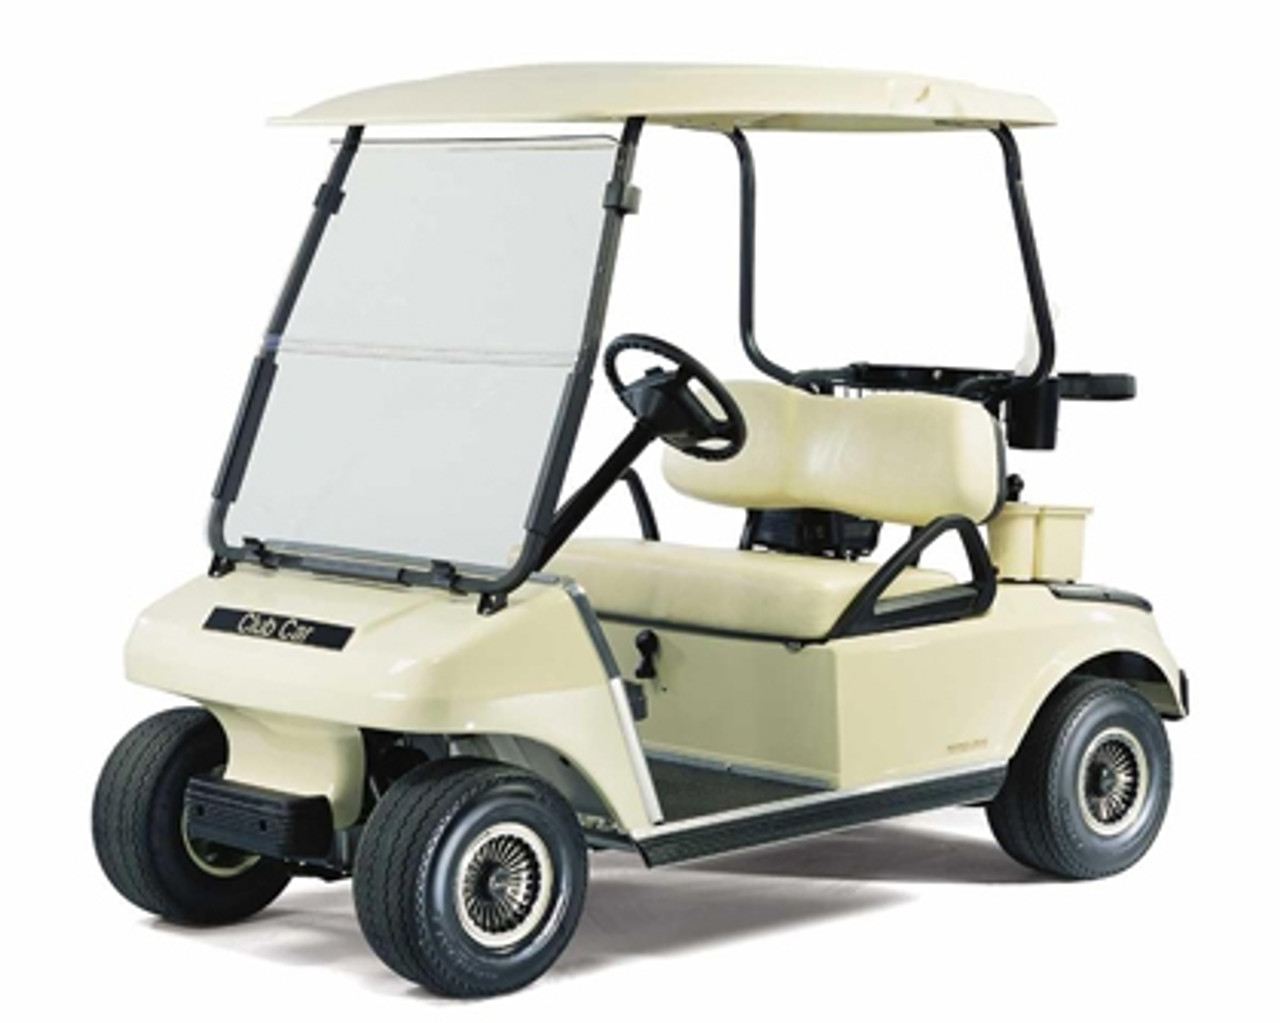 Golf Cart Extended Roofs & Tops - Fast & Free Shipping Today Roof Golf Cart Light Kit on golf cart light kits, golf cart trunk kits, golf cart dashboard kits, golf cart horn kits, golf cart frame kits, golf cart building kits, golf cart dump bed kits, golf cart windshield kits, golf cart carpet kits, golf cart speedometer kits, golf cart garage kits, golf cart speaker kits, golf cart dash kits, golf cart seat belt kits, golf cart canopy kits,